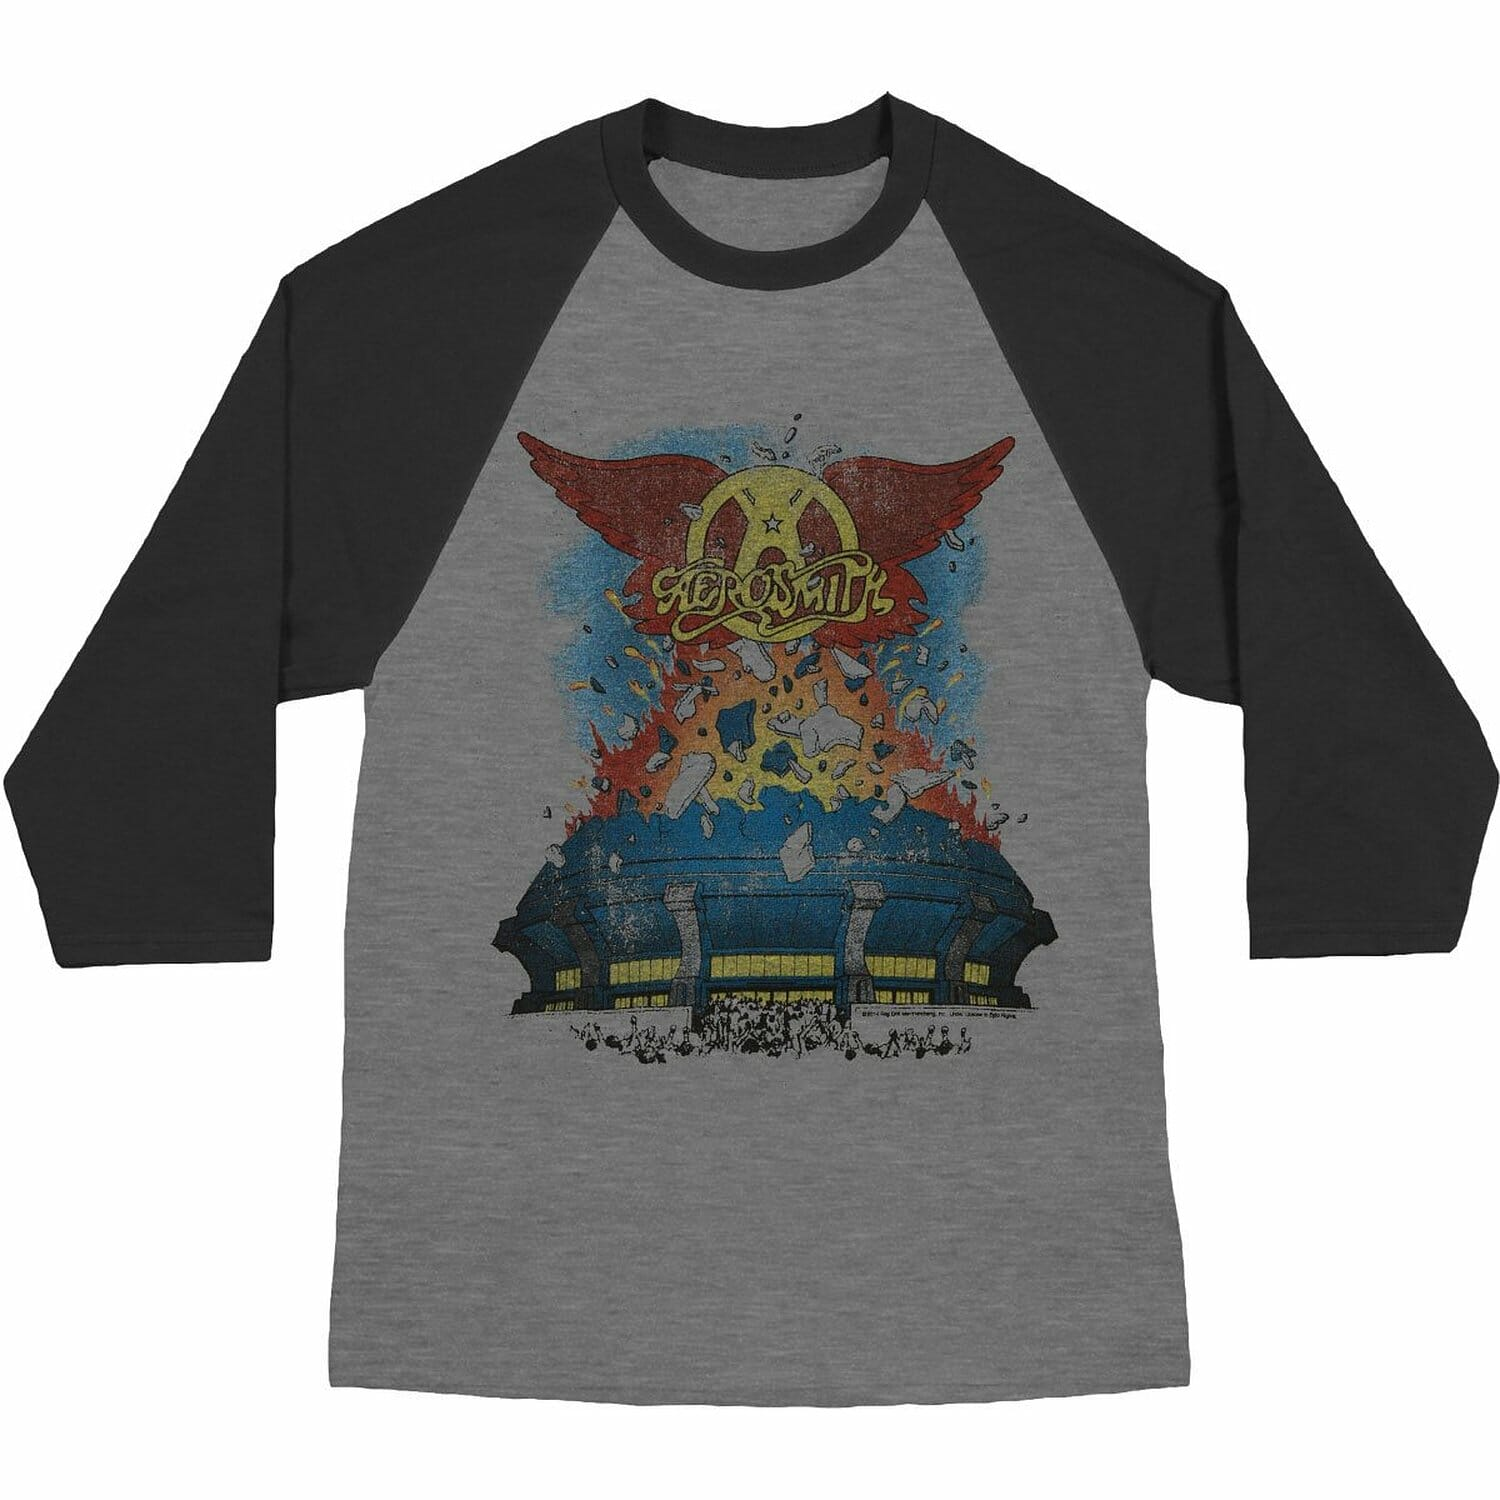 c34b8f3ed NYC's Largest and Best Selection of AEROSMITH T-Shirts! | METROPOLIS  VINTAGE N.Y.C.